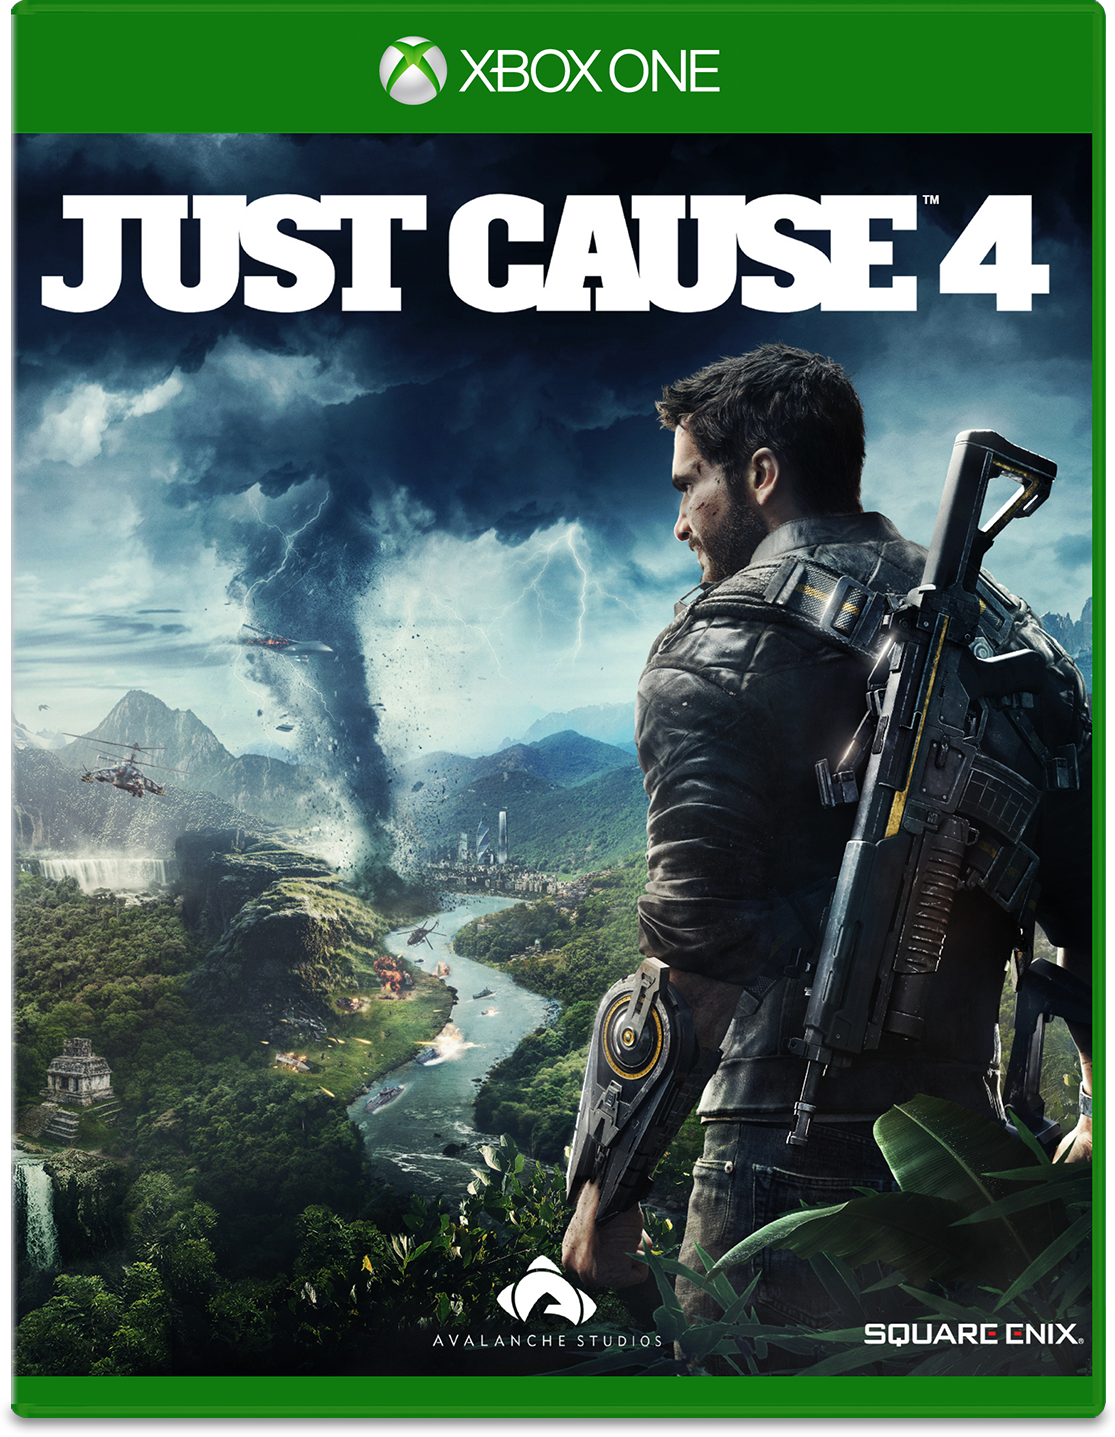 Cover of Just Cause 4 for Xbox One